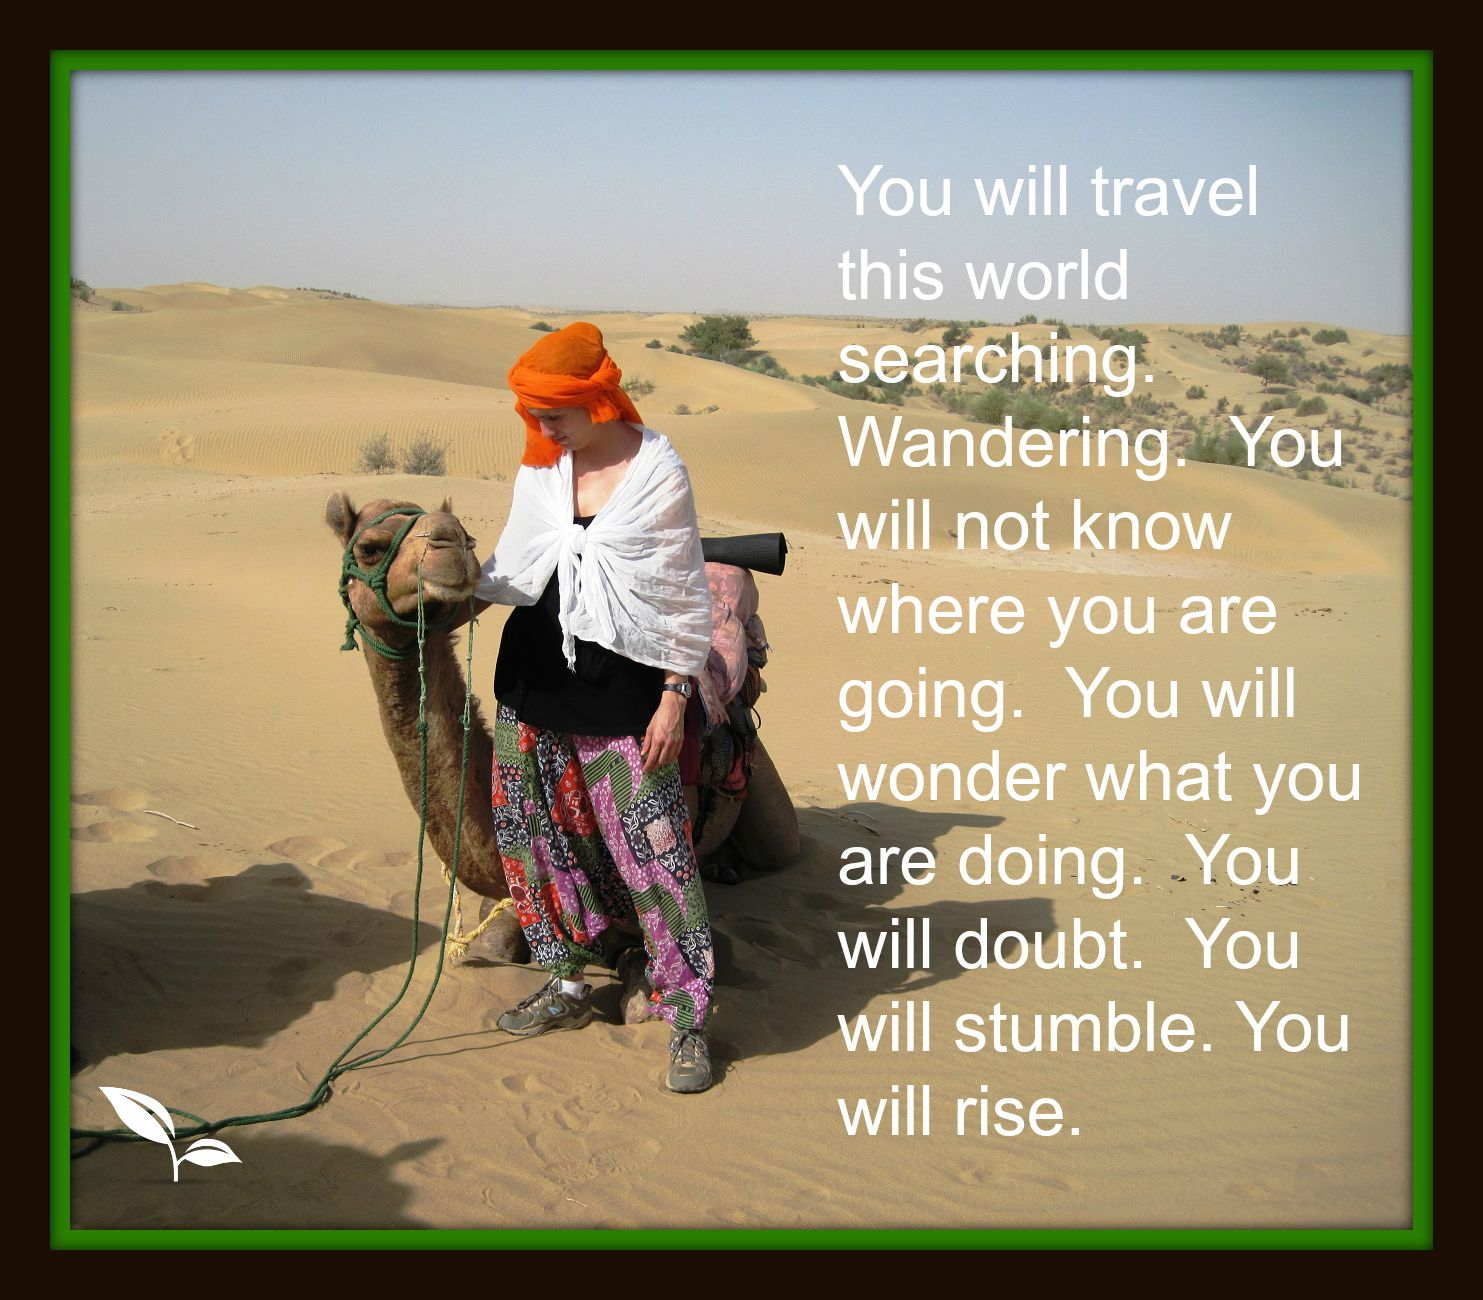 travel this world searching camel photo watermarked